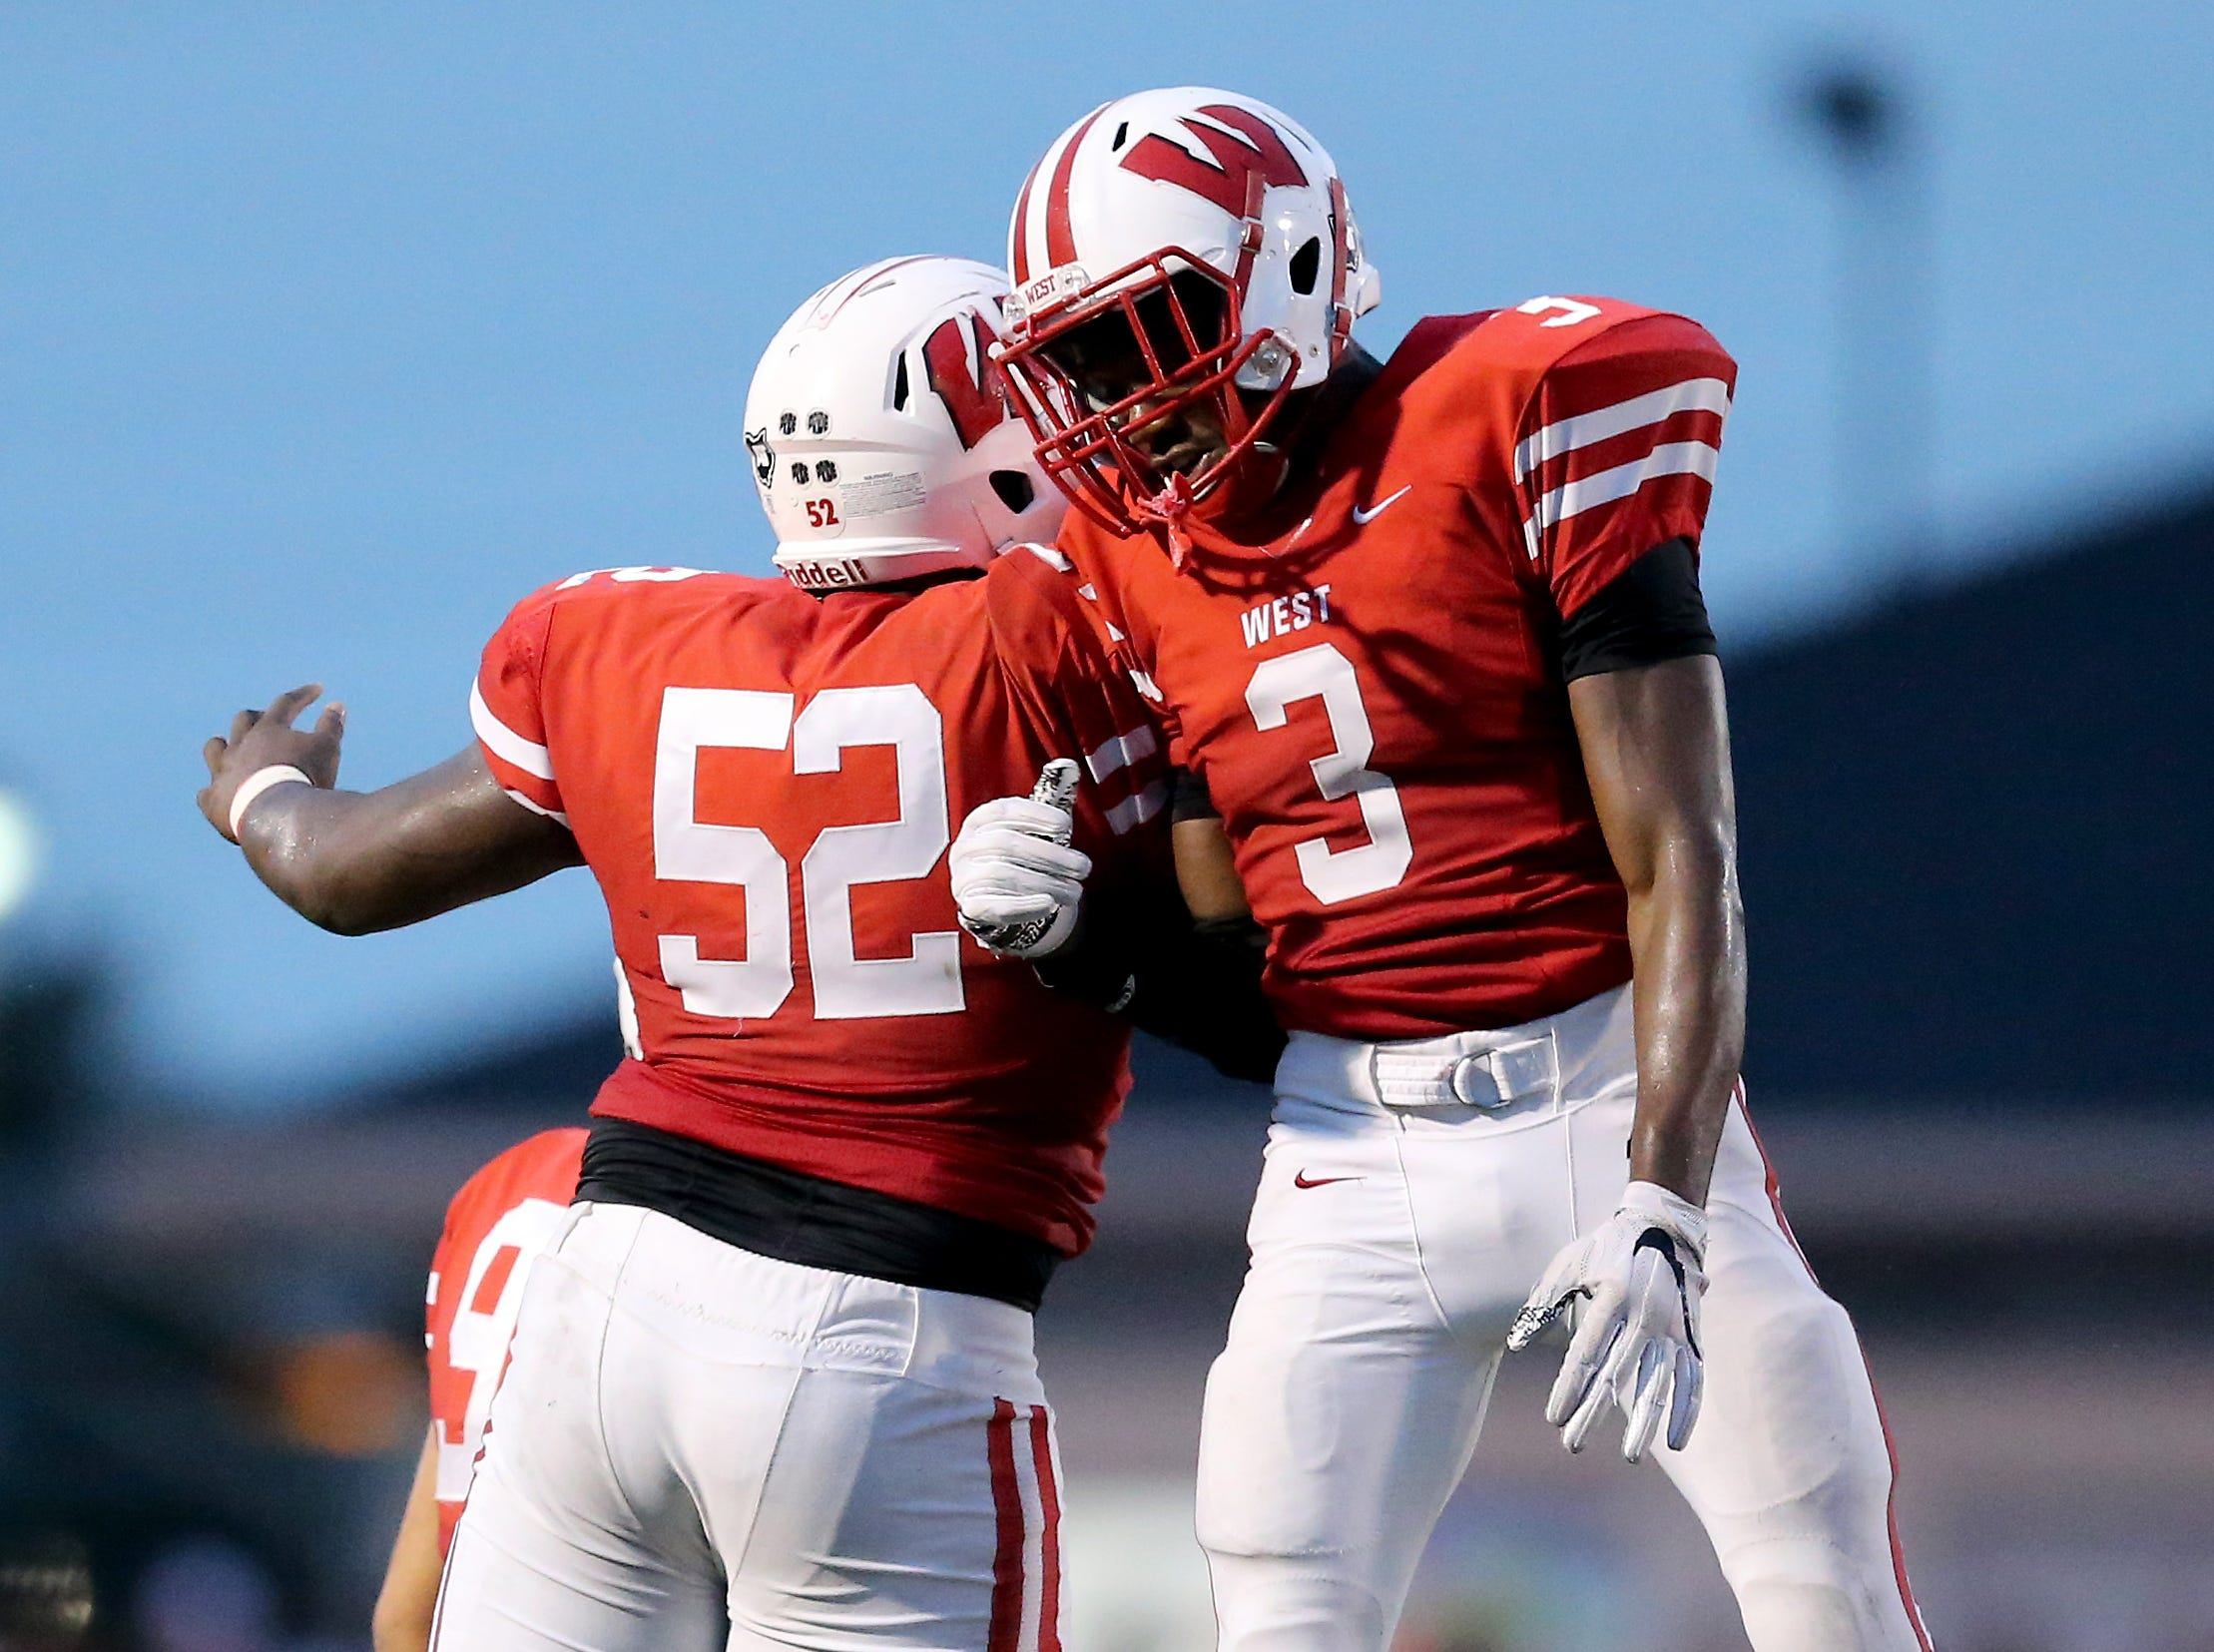 Lakota West Firebirds linebacker Jalen Swanson (3) celebrates a fumble recovery with defensive tackle Ladonnis Griffin (52) in the second quarter during a high school football game between the Oak Hills Highlanders and Lakota West Firebirds, Friday, Sept. 21, 2018, at Lakota West High School in West Chester Township, Ohio.